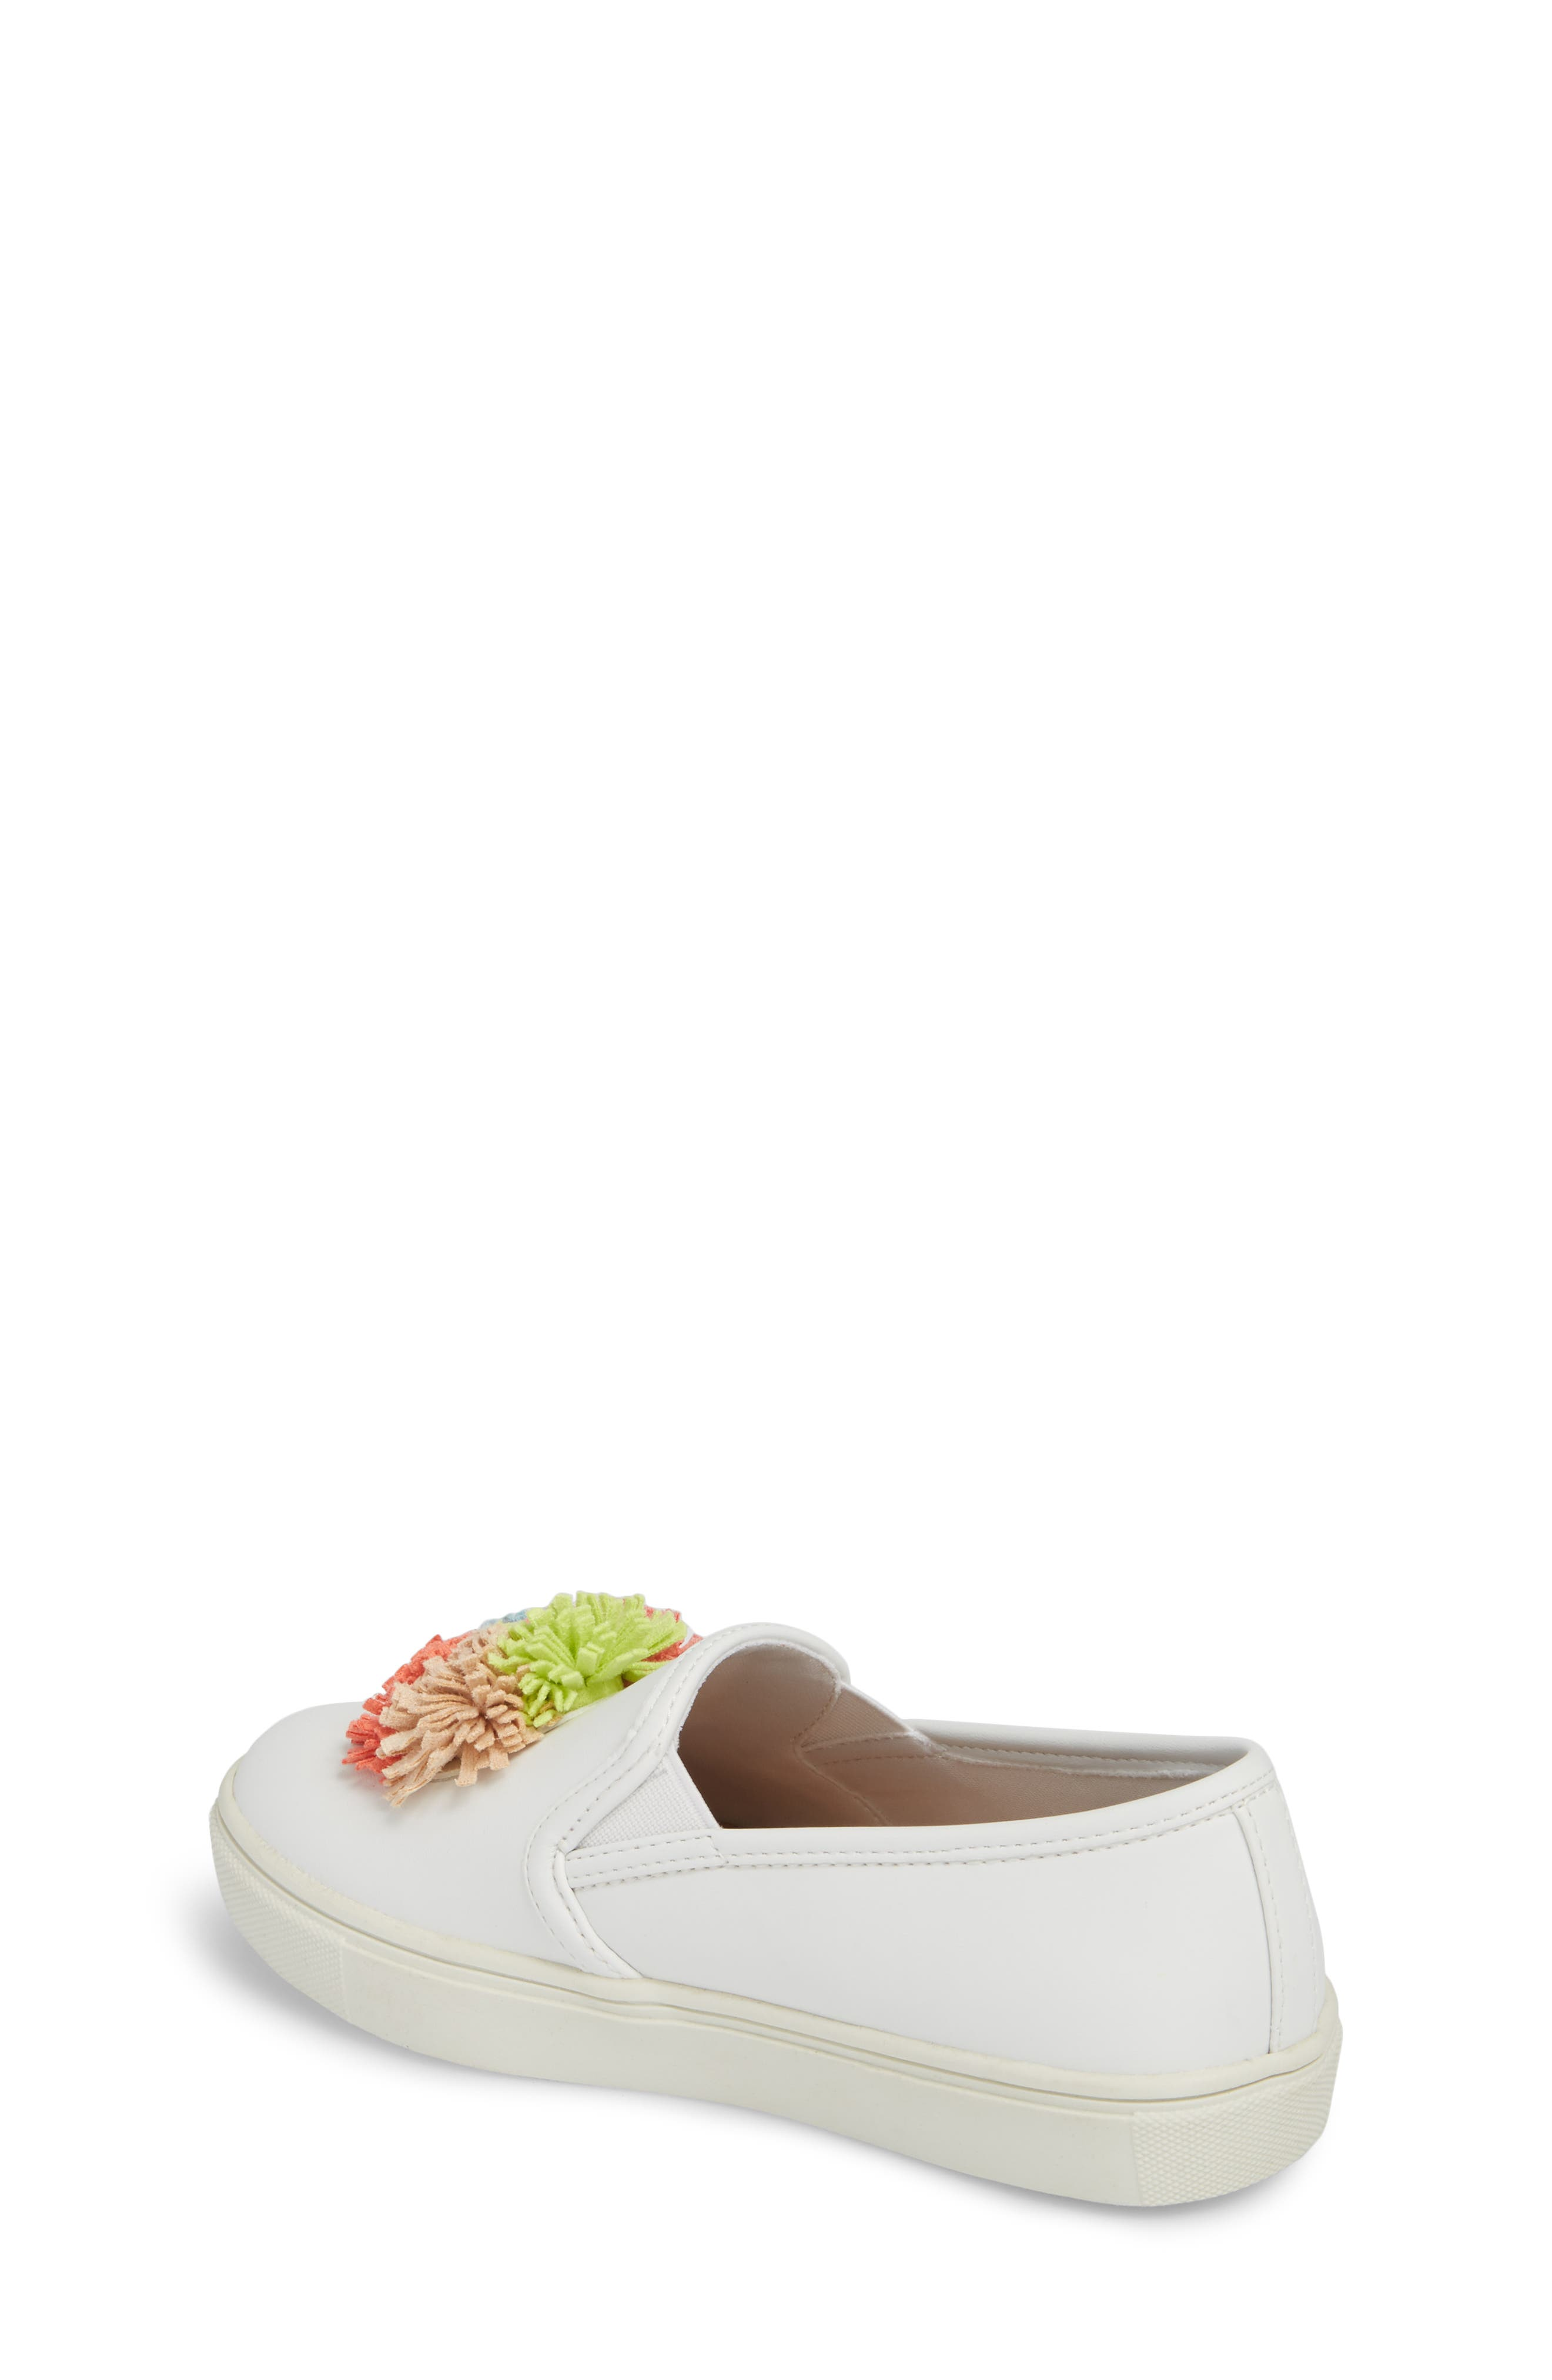 Twiny Pompom Slip-On Sneaker,                             Alternate thumbnail 2, color,                             White Faux Leather